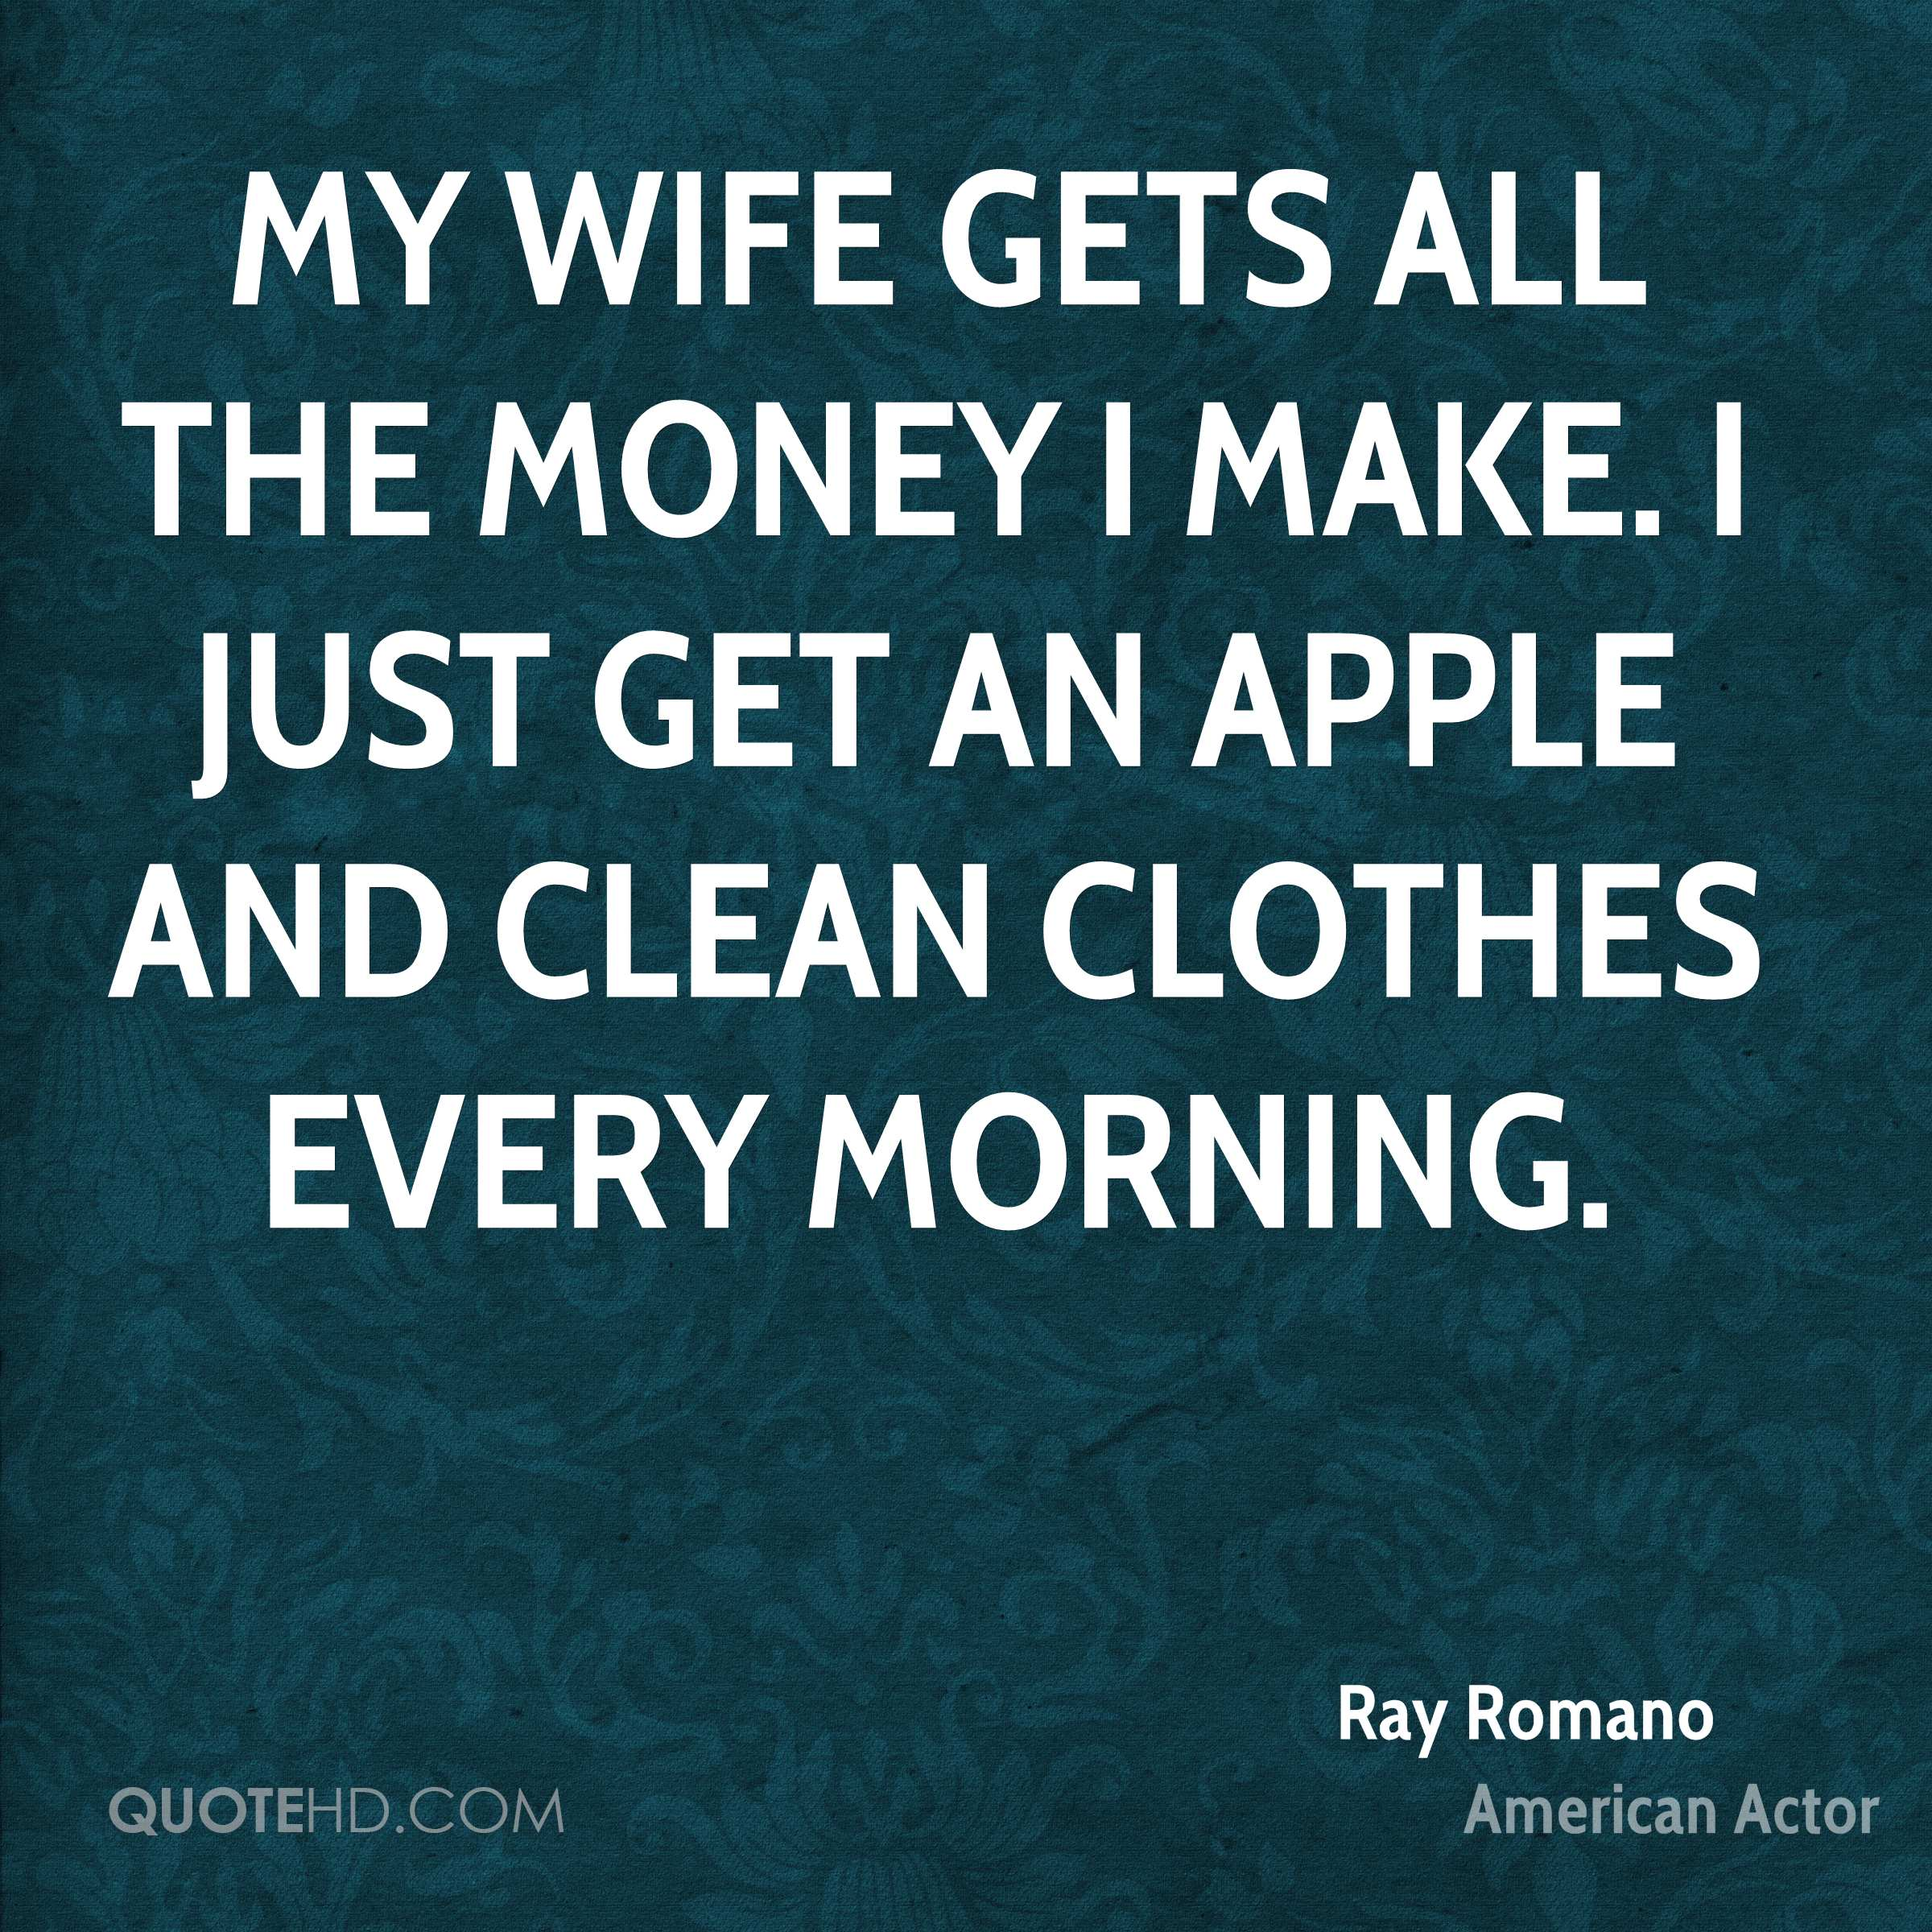 My wife gets all the money I make. I just get an apple and clean clothes every morning.